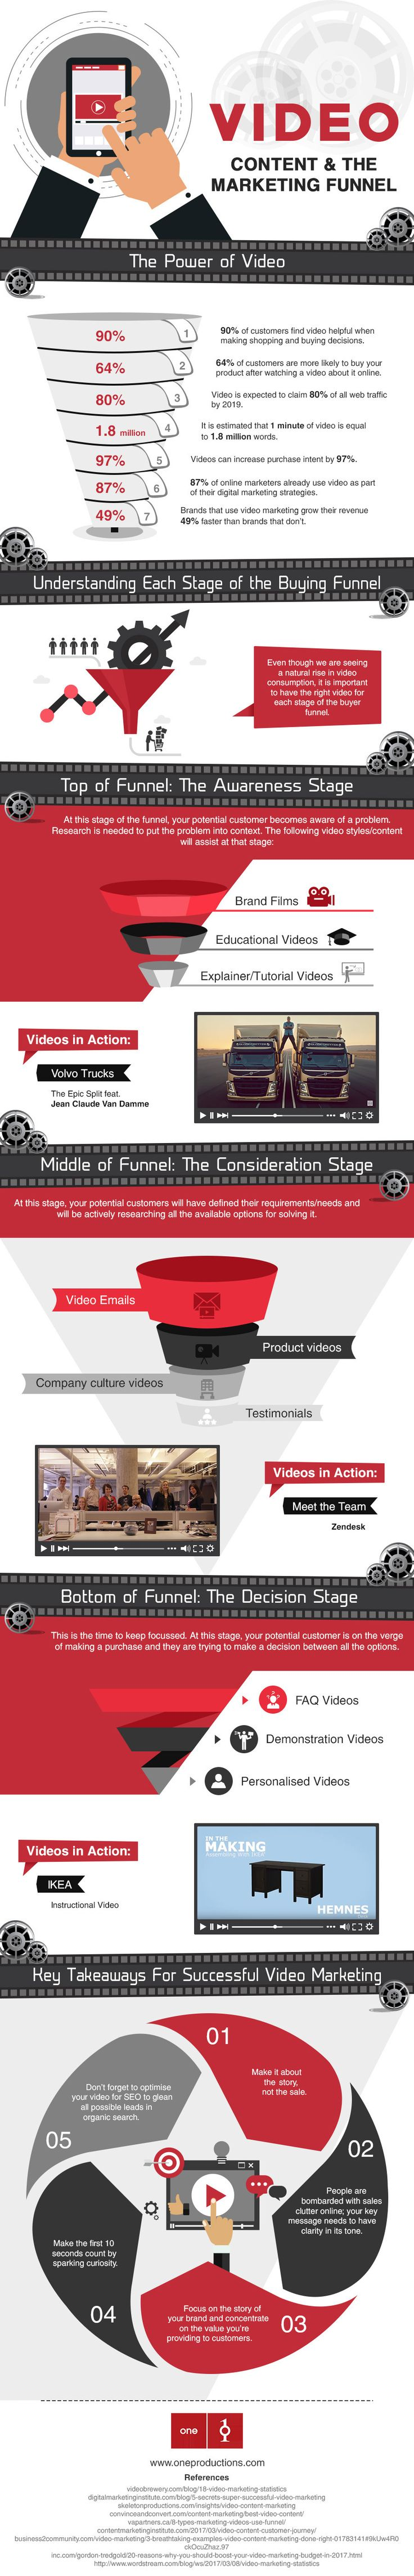 Video is helpful for making shopping or buying decisions, but using video in marketing isn't straightforward: Here's how to pick the right type of video for each stage of the marketing funnel.